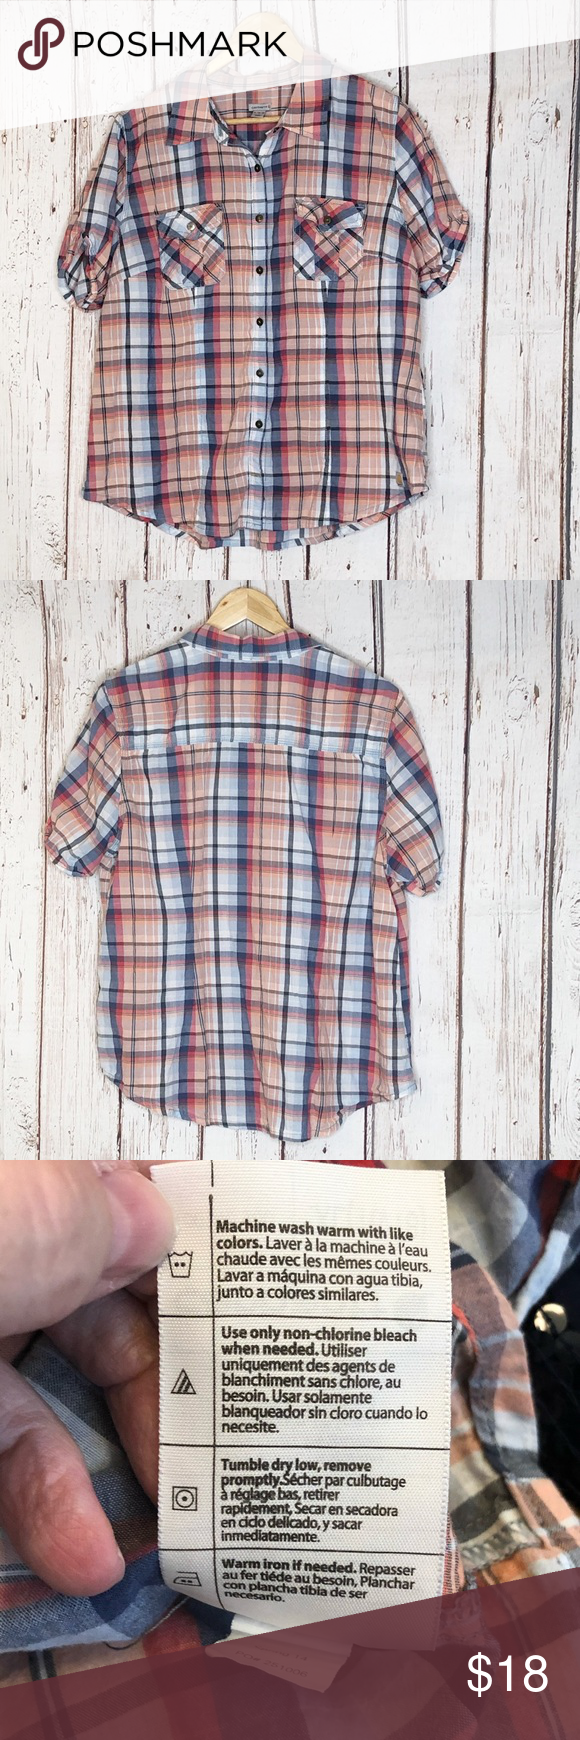 Carhartt Women's plaid button up shirt XL Carhartt Women's plaid button up shirt XL 16/18 Plaid Orange Short sleeve  Spring 2014 Cotton spandex blend  Machine wash warm tumble dry low  Measurements are approximates  Chest 48 length 27 6 Oz W1-8 Carhartt Tops Button Down Shirts #carharttwomen